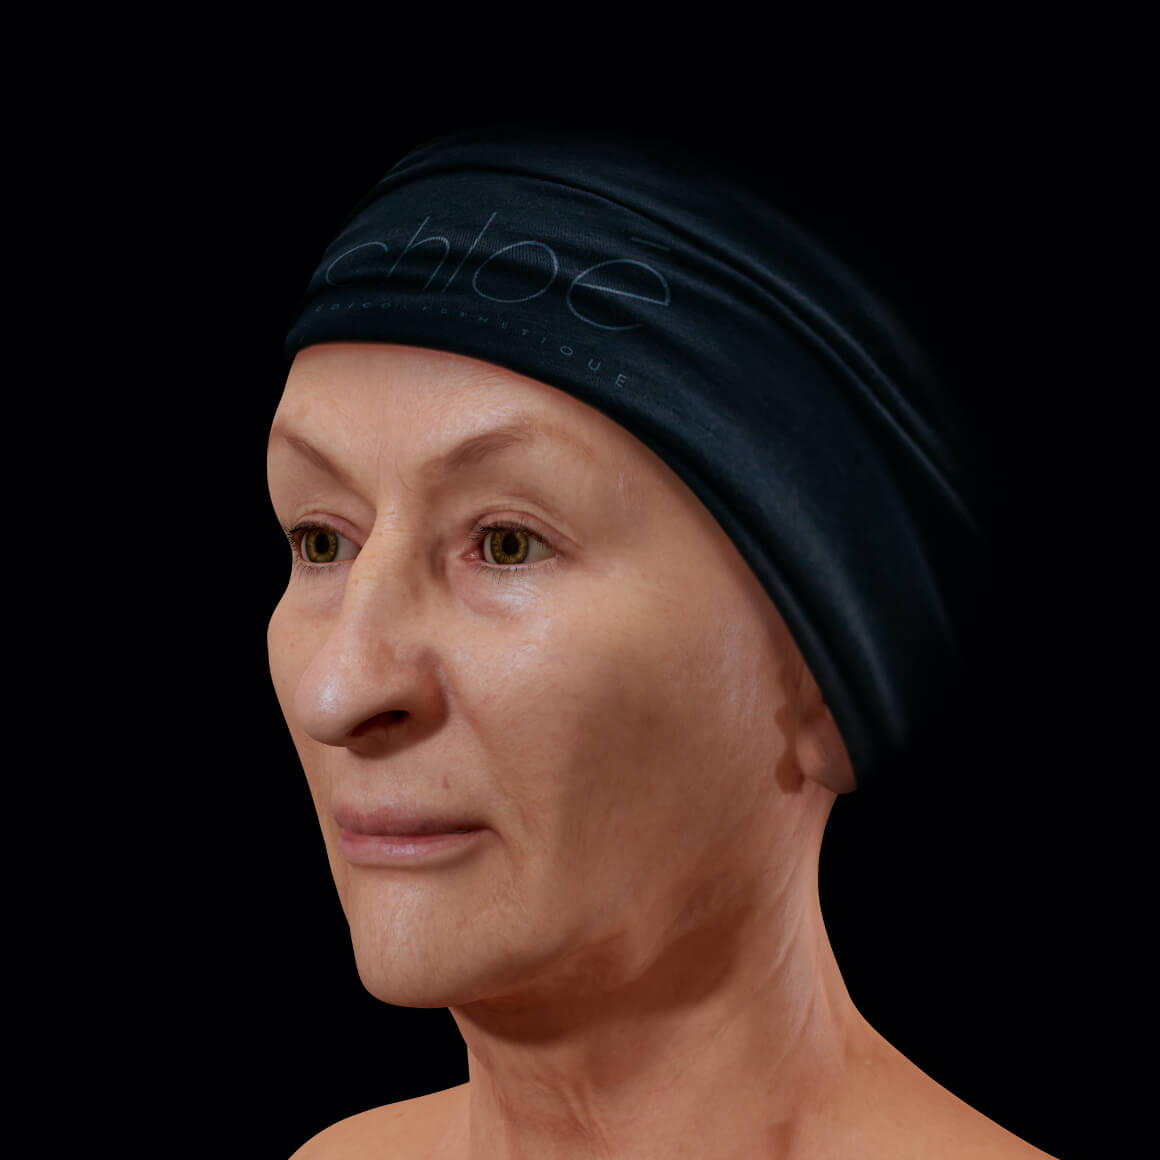 A female Clinique Chloé patient positioned at an angle after an IPL photorejuvenation treatment for rosacea